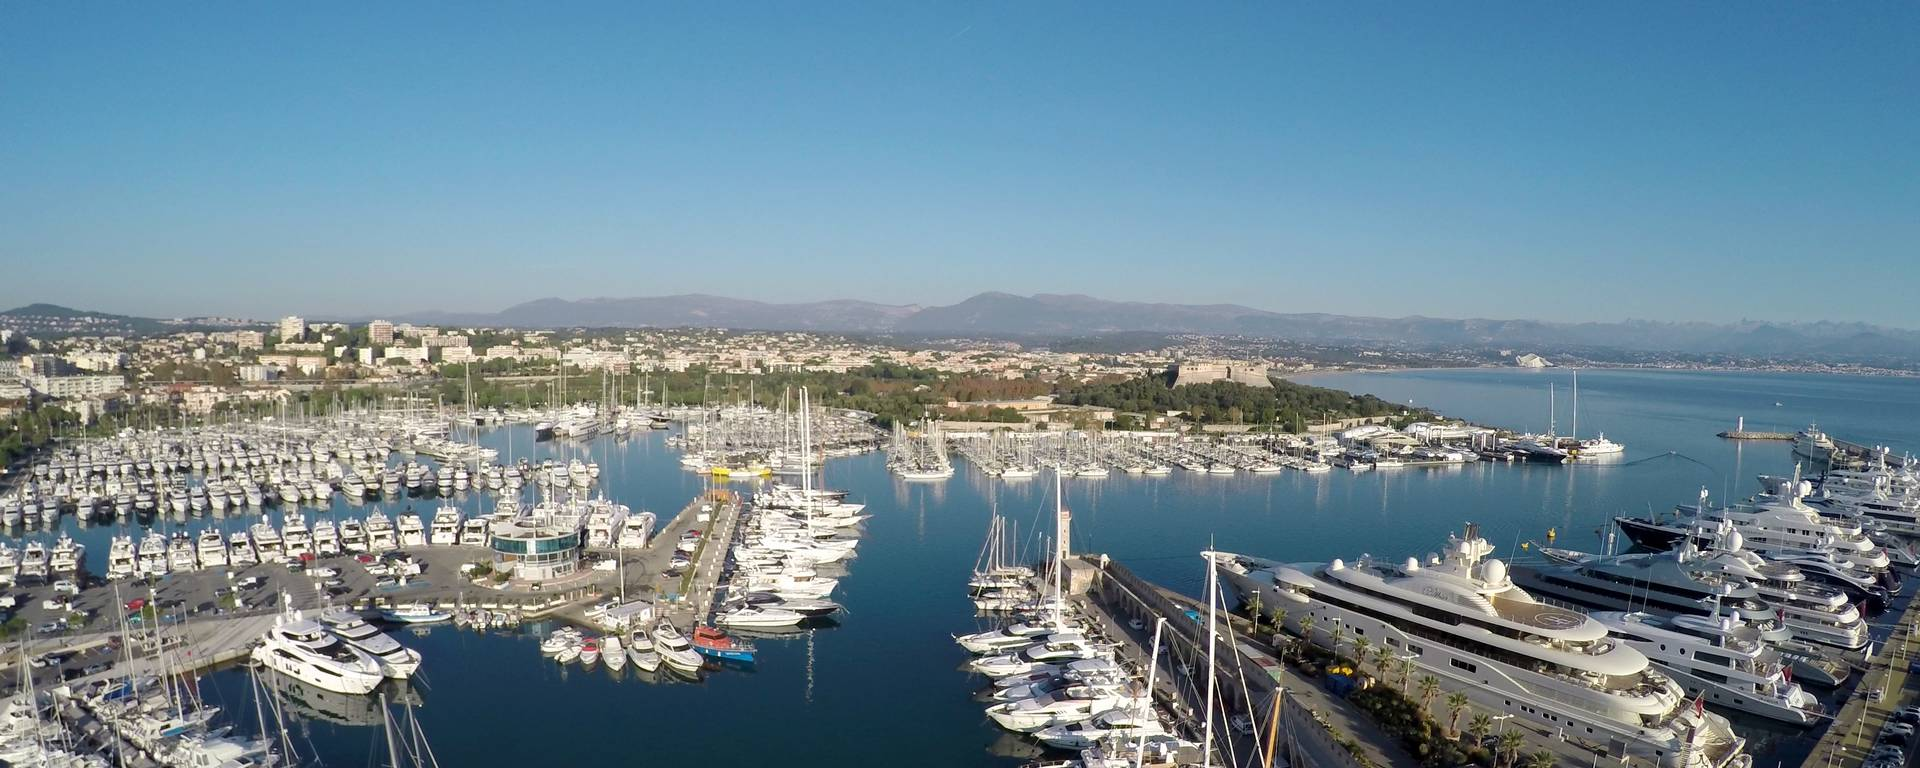 Antibes' port Vauban, billionaire wharf in first plan